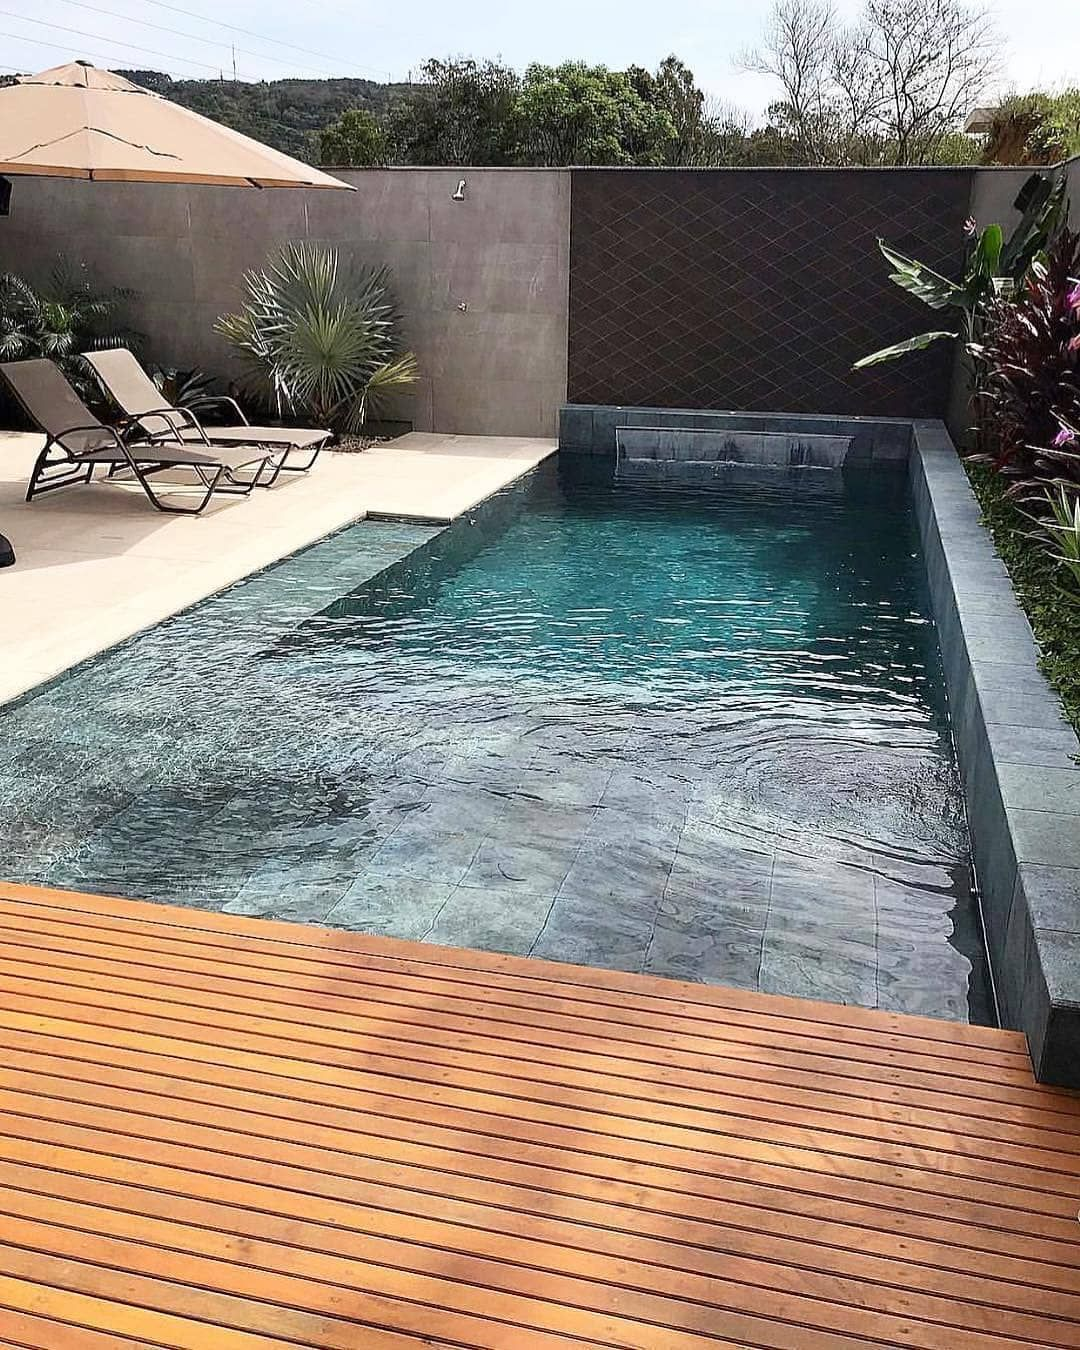 Swimming Pool Design Ideas Pooldesign Swimmingpool Swimmingpooldesign Swimmingpoolideas Cool Swimming Pools Pool Patio Designs Swimming Pool Designs